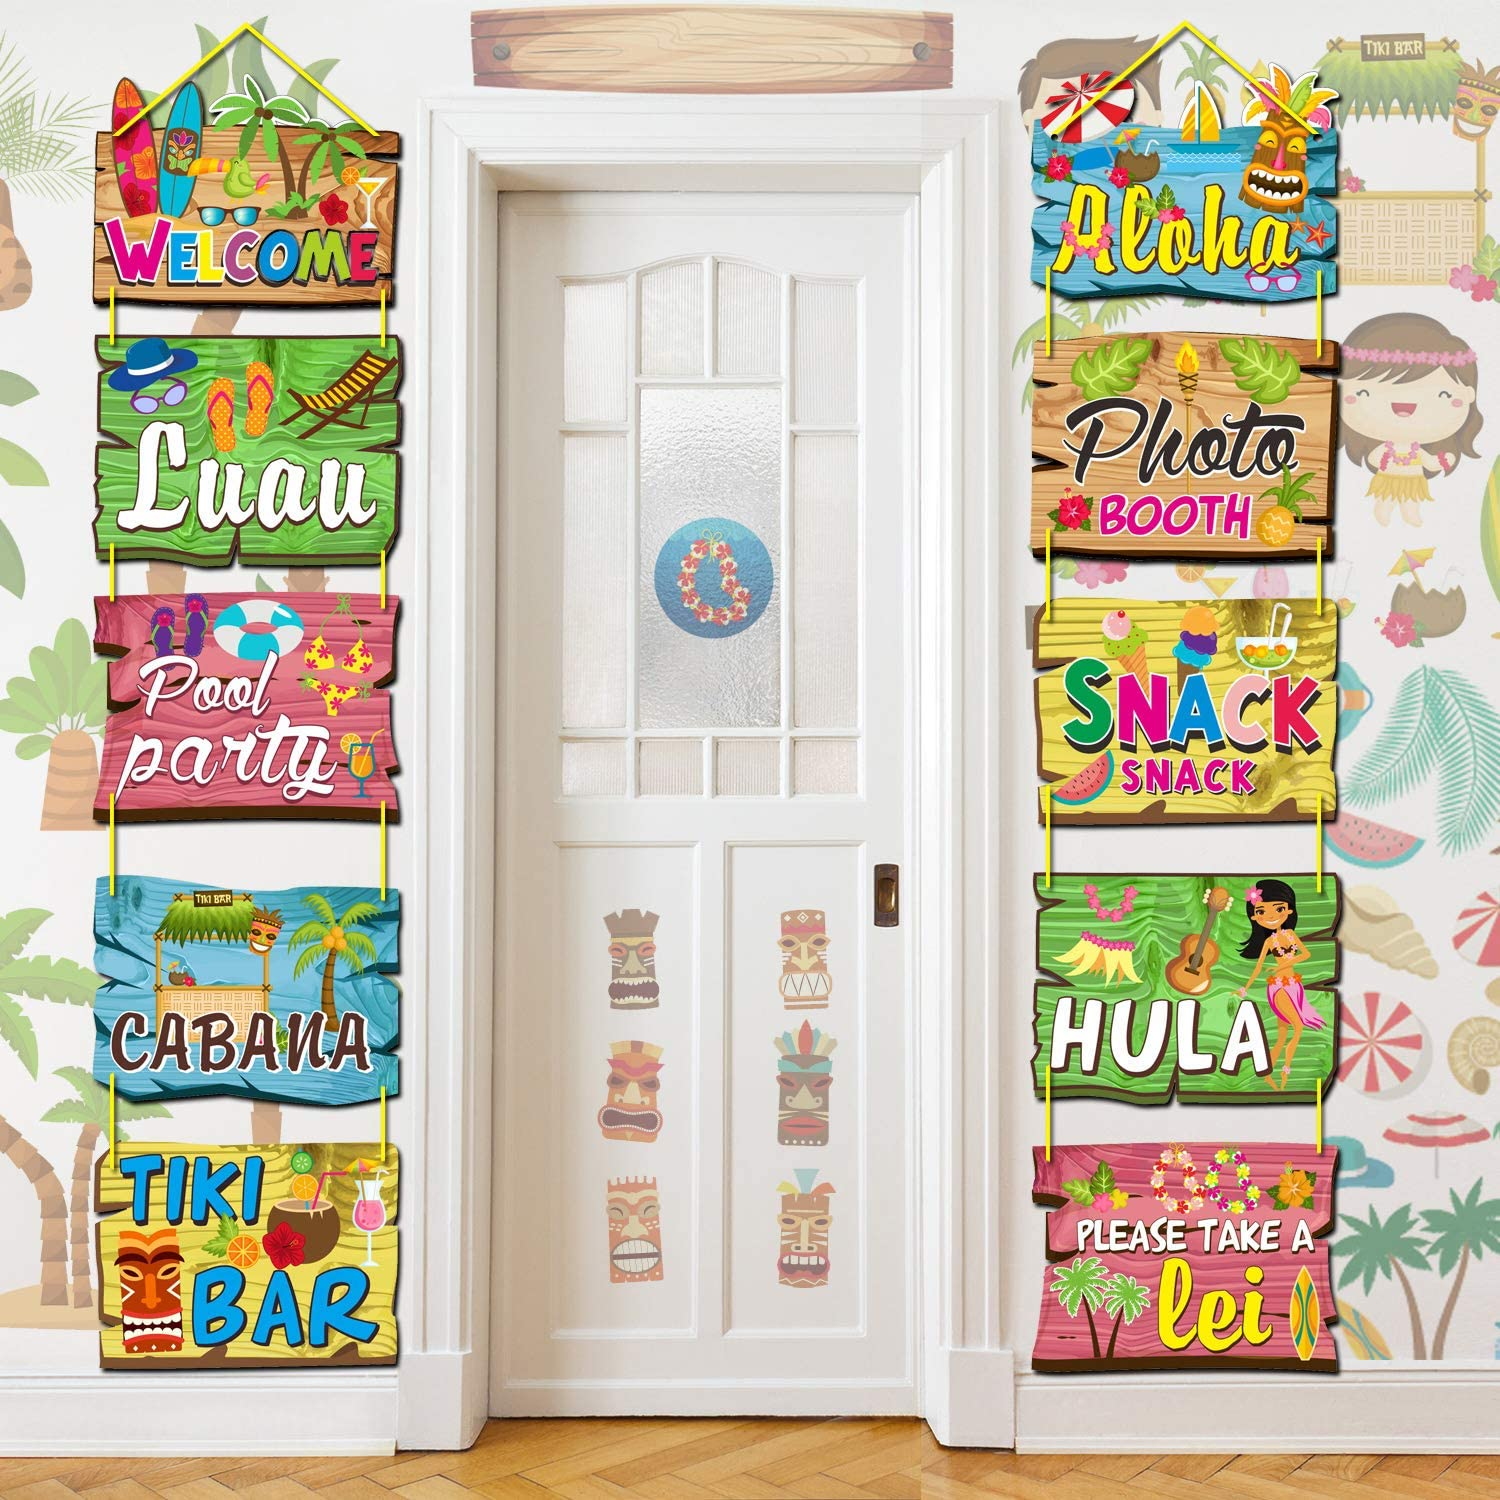 Luau Party Signs Aloha Welcome Signage Tropical Summer Birthday Party Hawaiian Party Baby Shower Yard Decorations Tiki Bar Photo Props Cutout – 15 Pieces